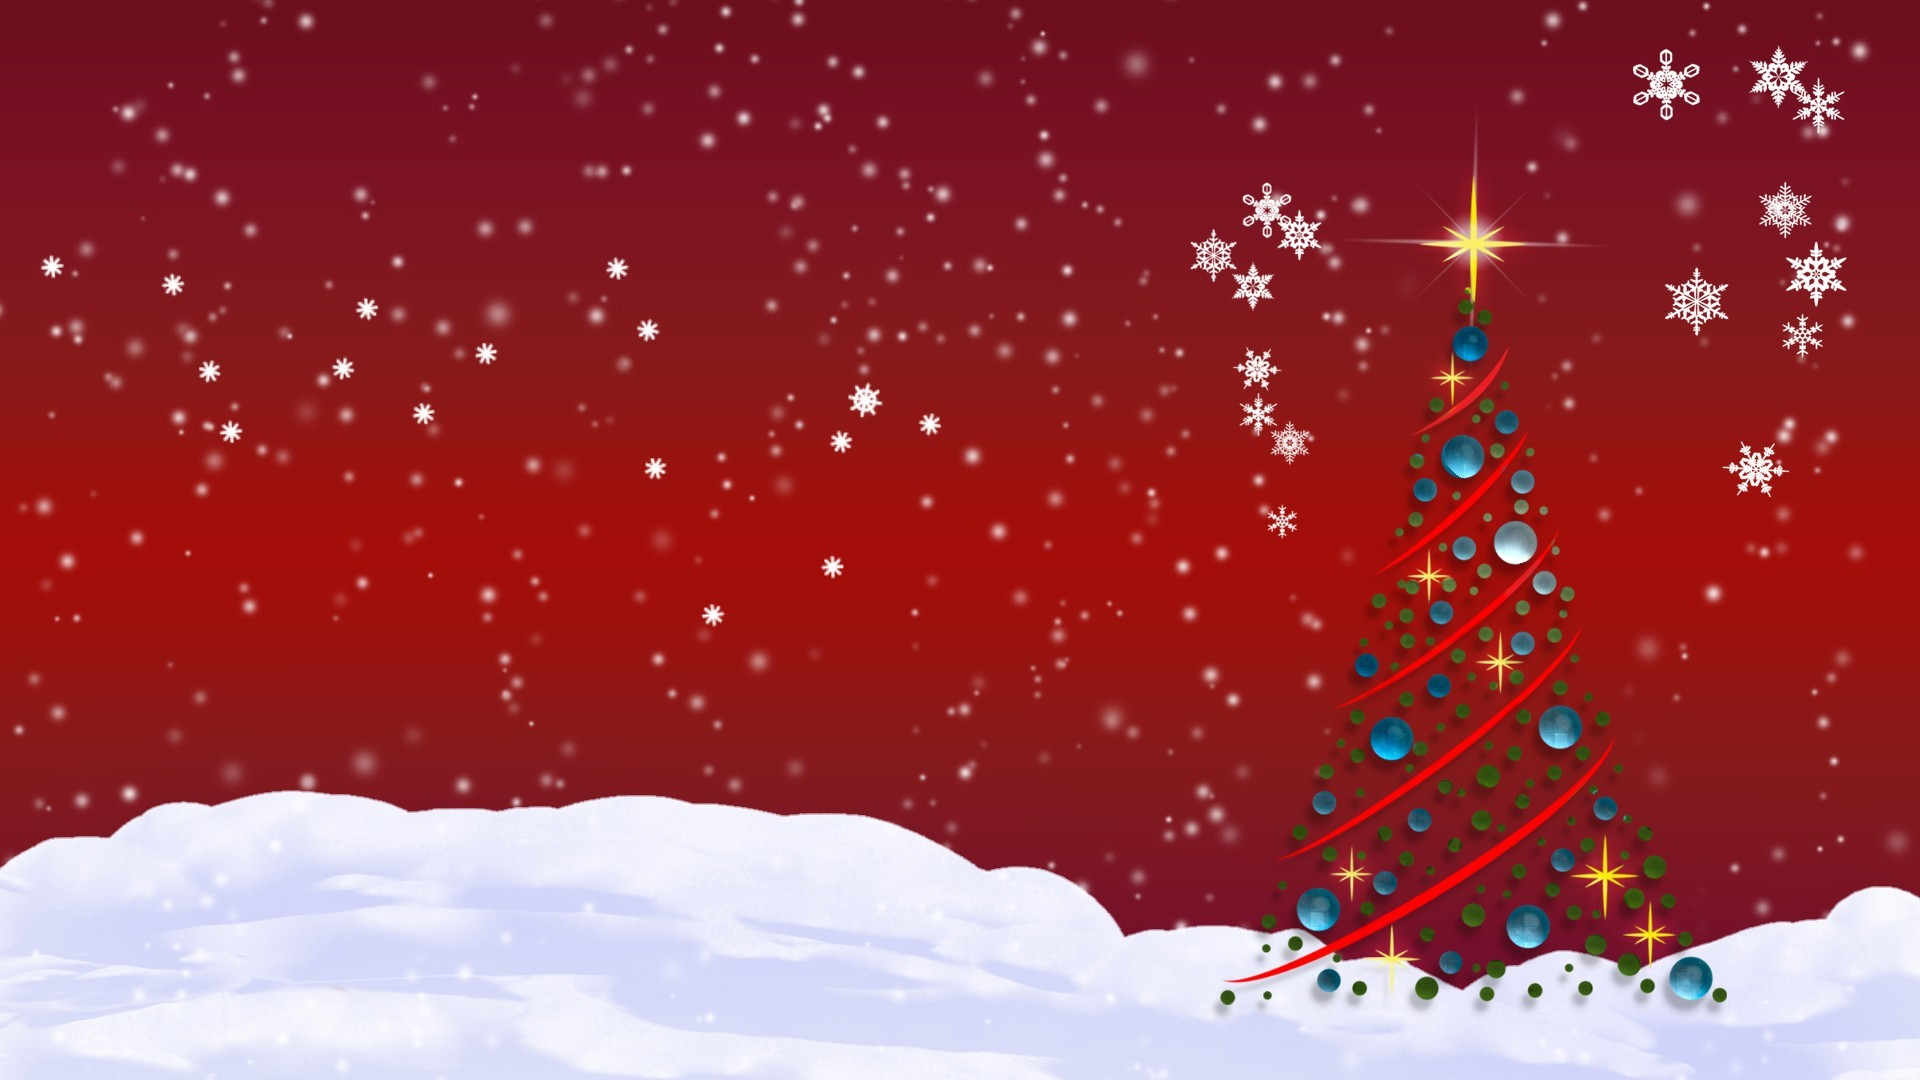 1297878 christmas wallpaper for mac 1920x1080 for iphone 5